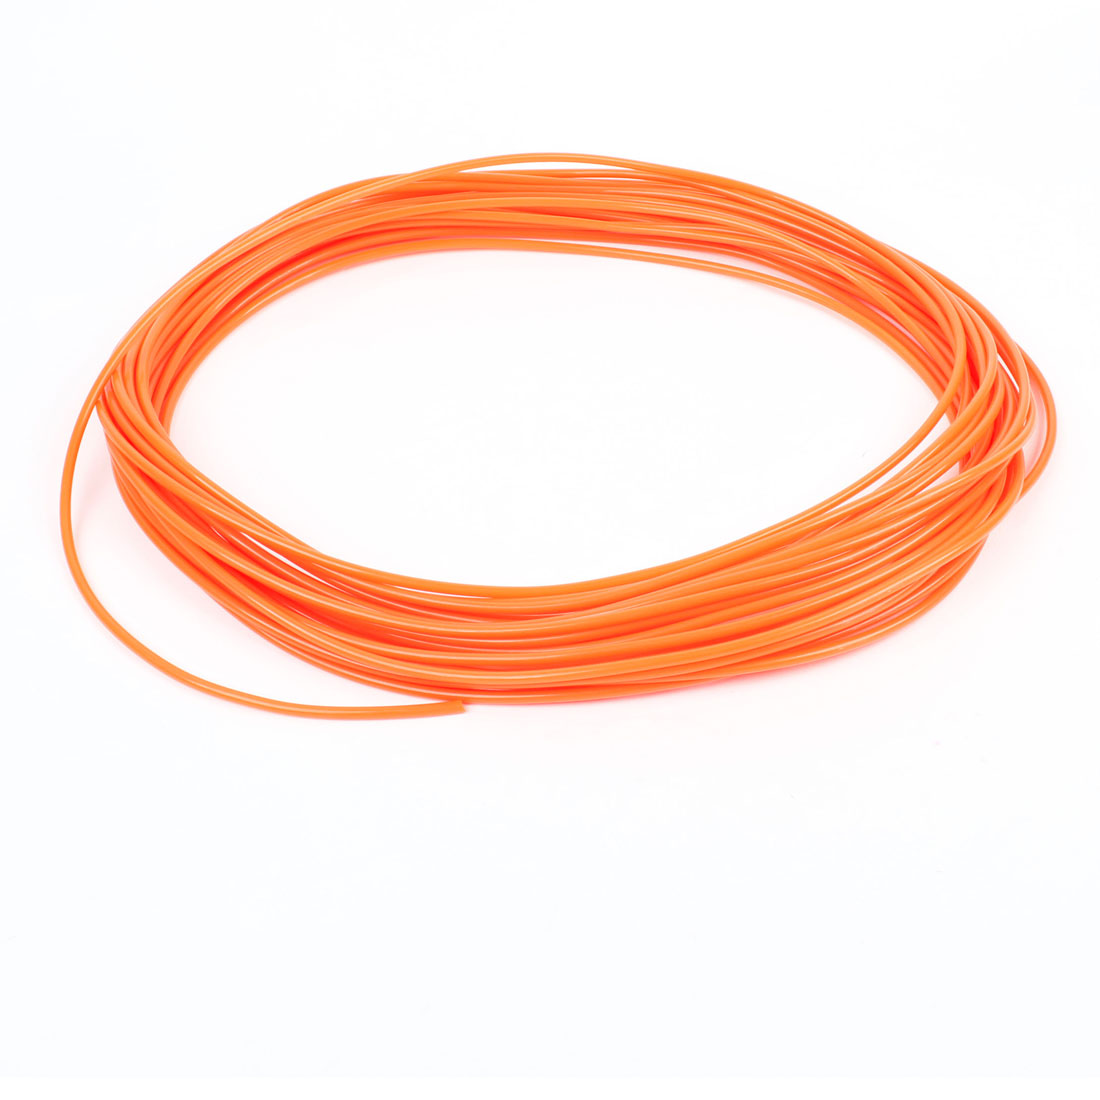 20 Meter 65.6Ft 4mm x 2.5mm Pneumatic Air PU Hose Pipe Tube Orange